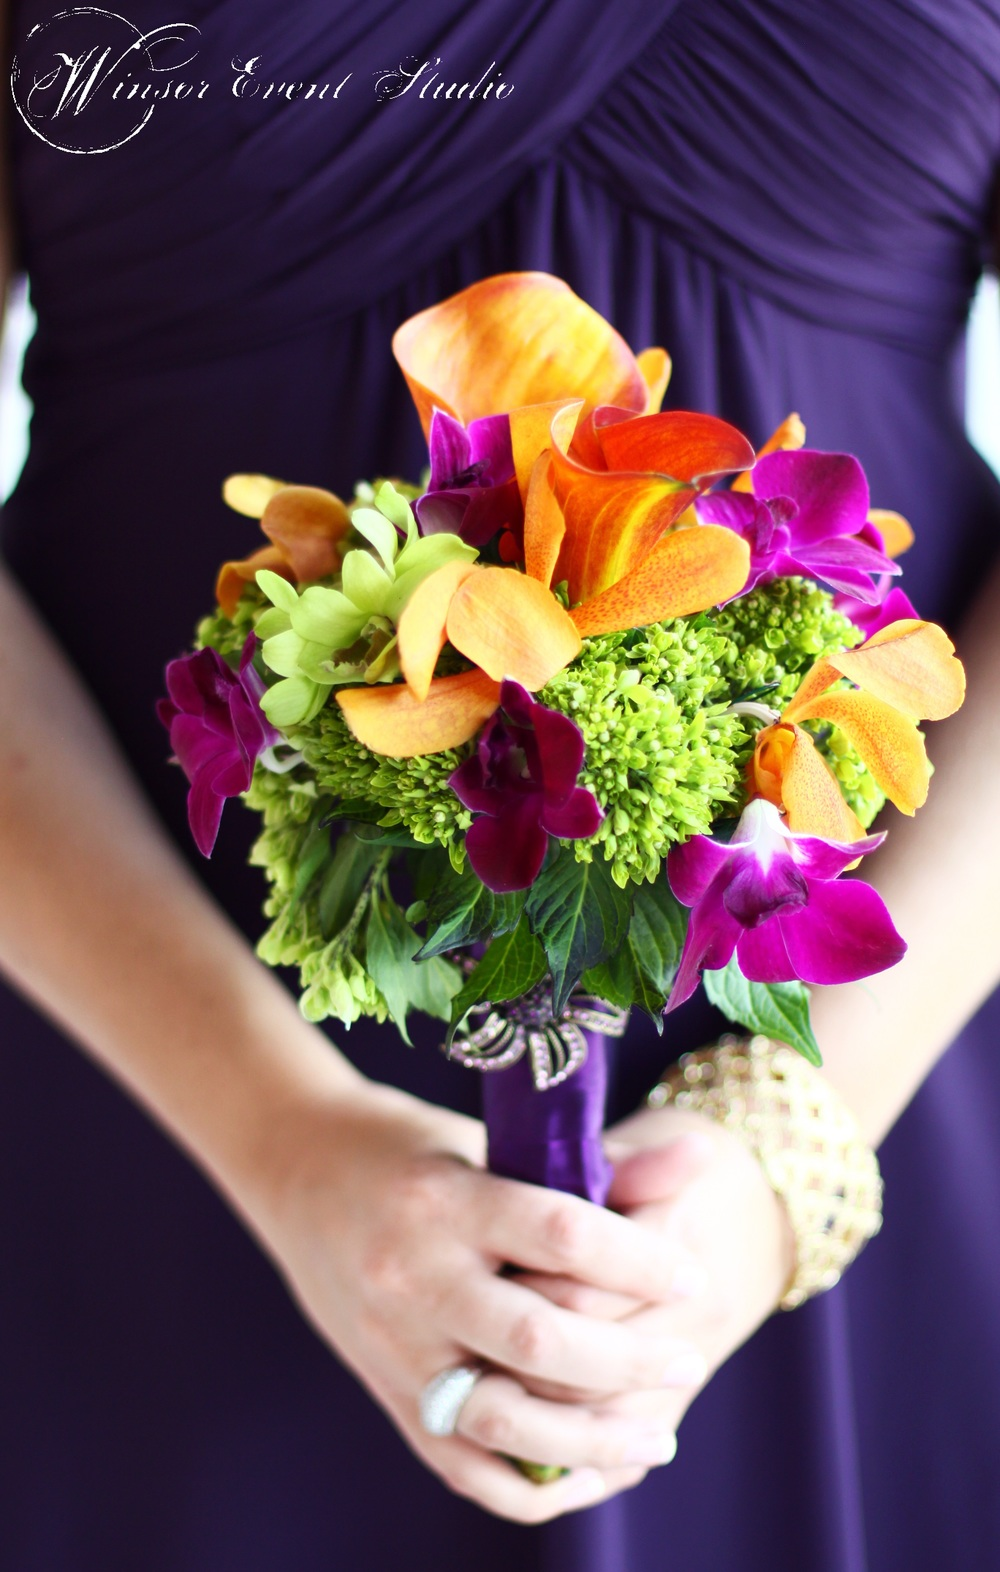 winsor event studio colorful bouquet orchid